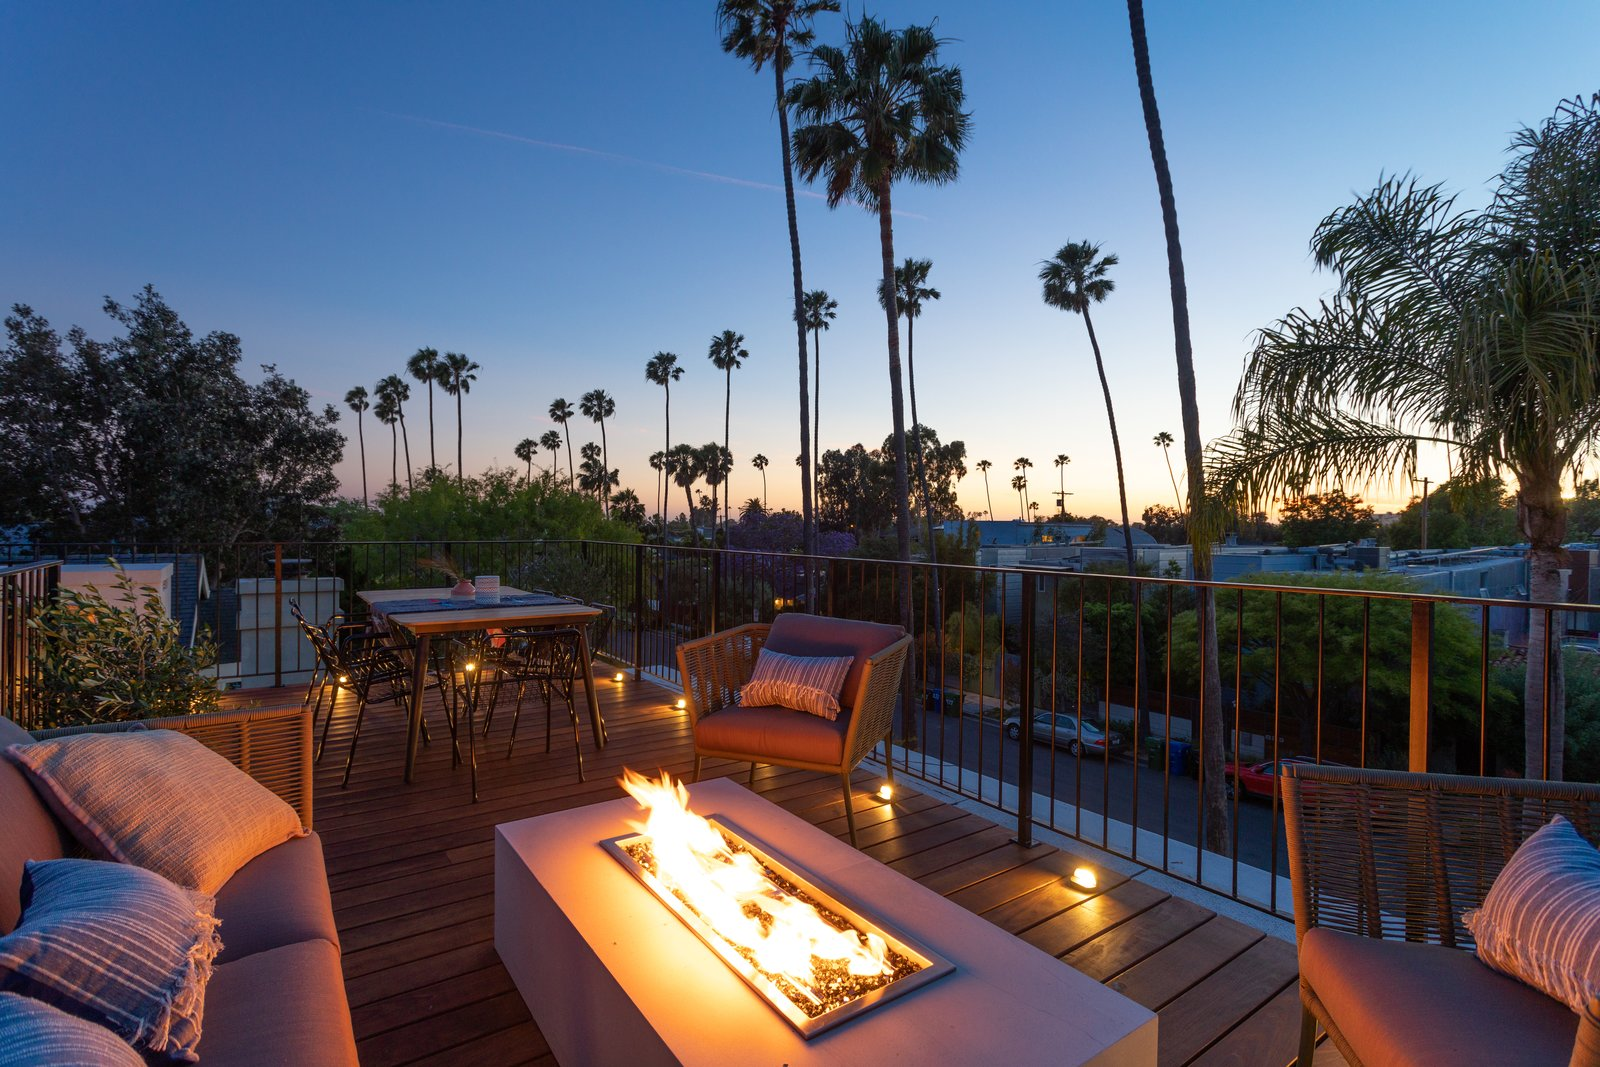 Outdoor and Rooftop Rooftop deck with fire pit with seating for outdoor entertaining.   Milwood Residence by Mayes Office